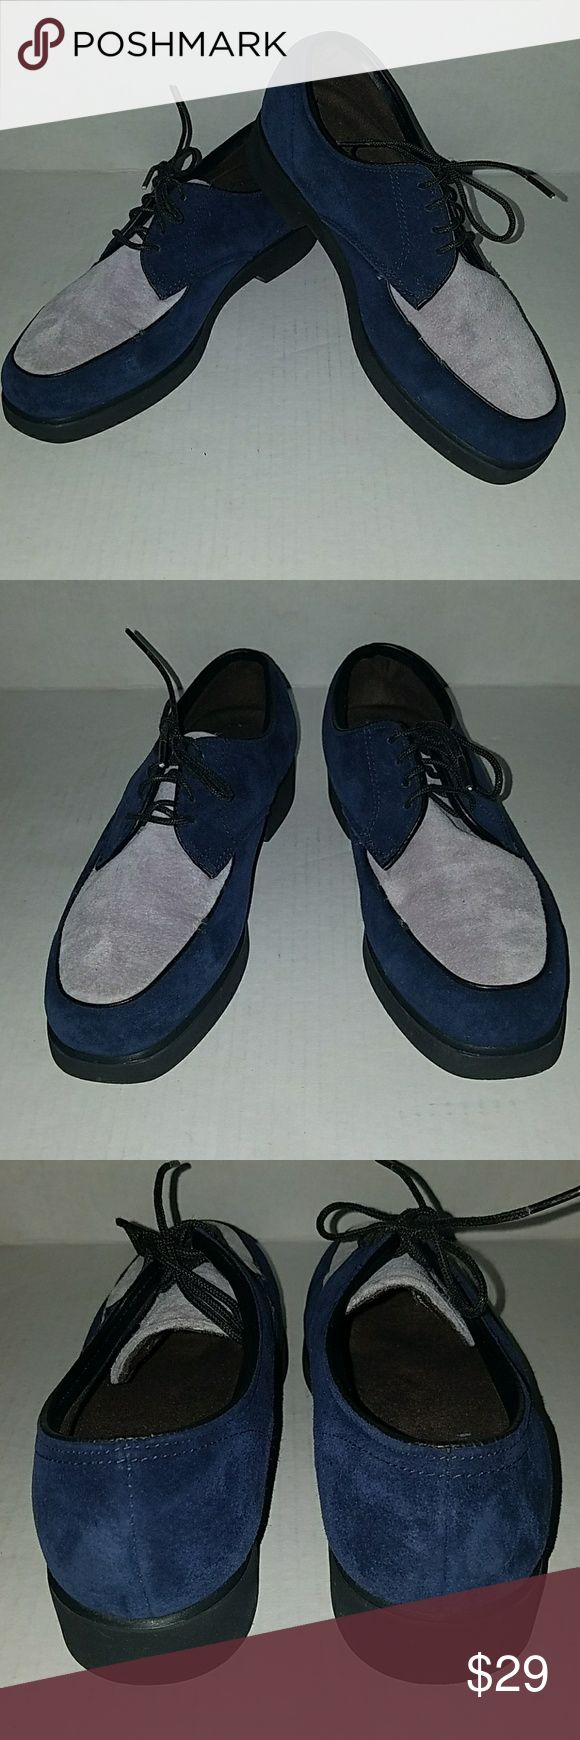 Hush Puppy suede two-tone Oxford shoes Sz 7 women Excellent used condition, suede with waxed cotton laces. Cushioned and very comfortable Hush Puppies Shoes Flats & Loafers